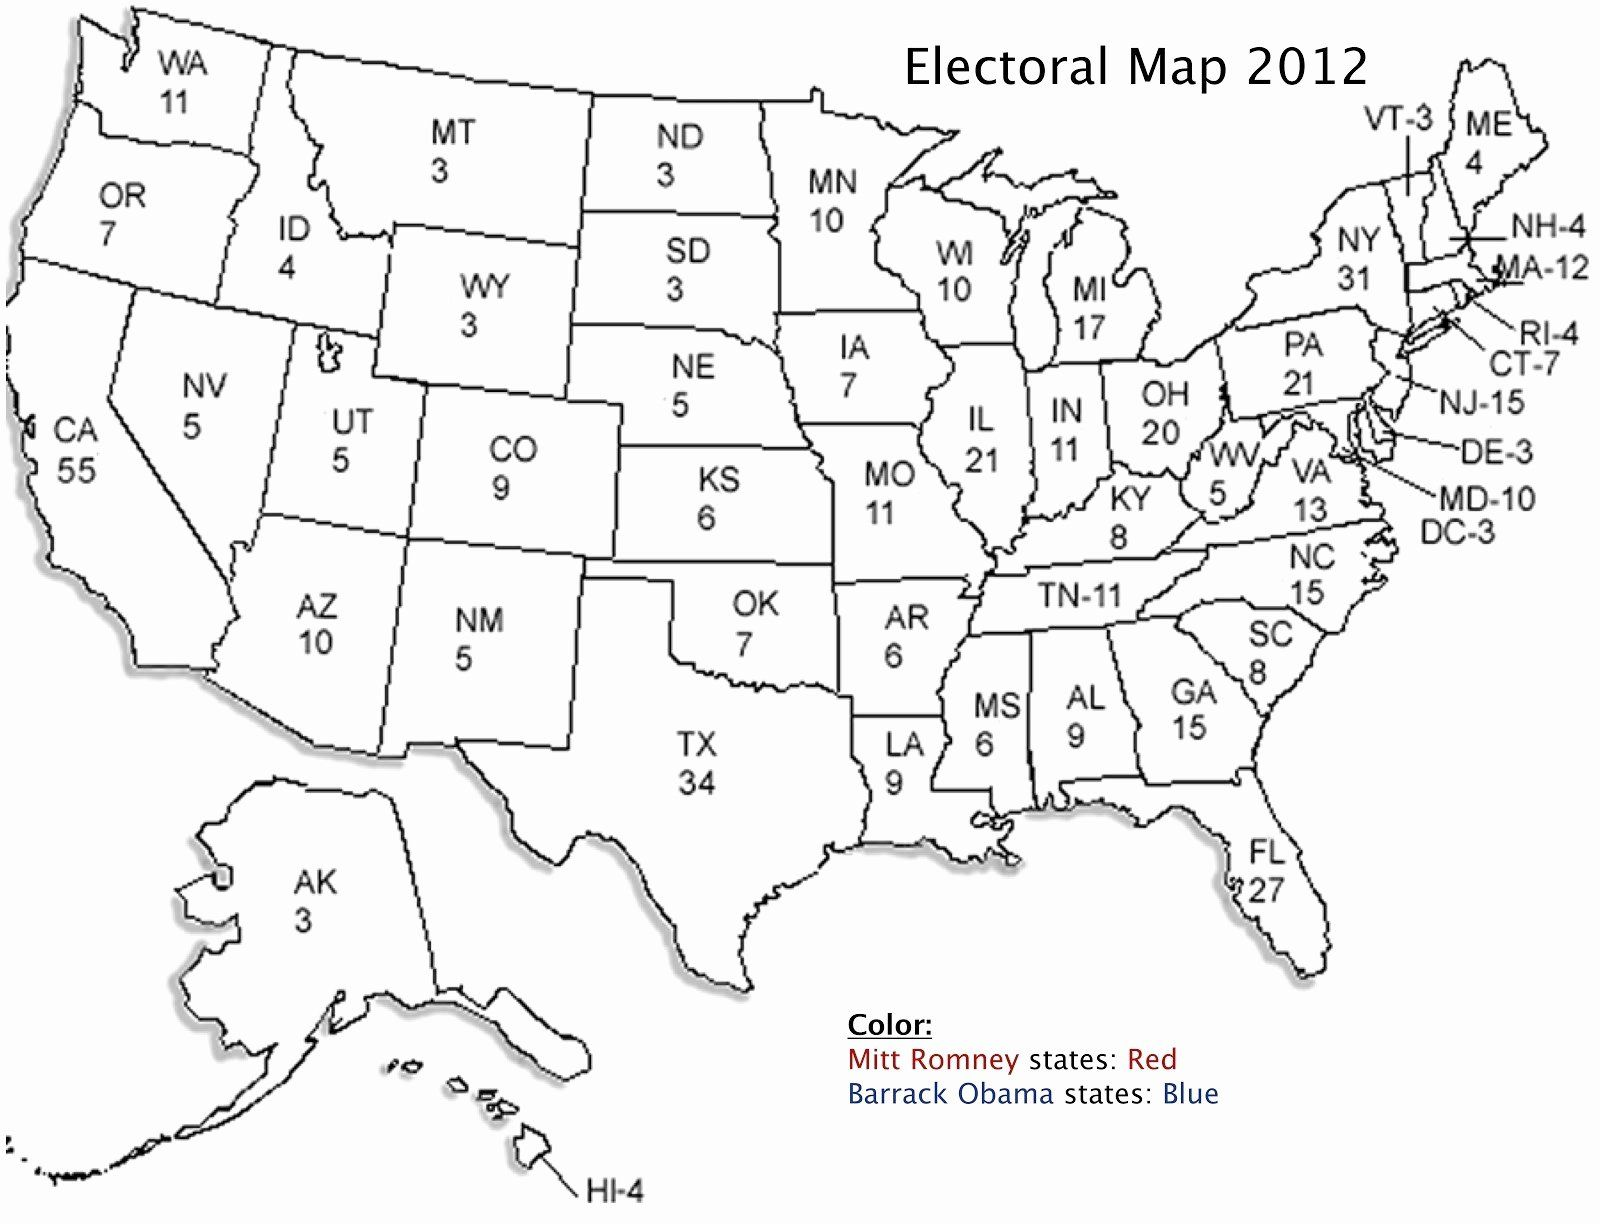 United States Coloring Pages Unique Election Coloring Pages At Getcolorings In 2020 World Map Coloring Page Coloring Pages Inspirational Coloring Pages